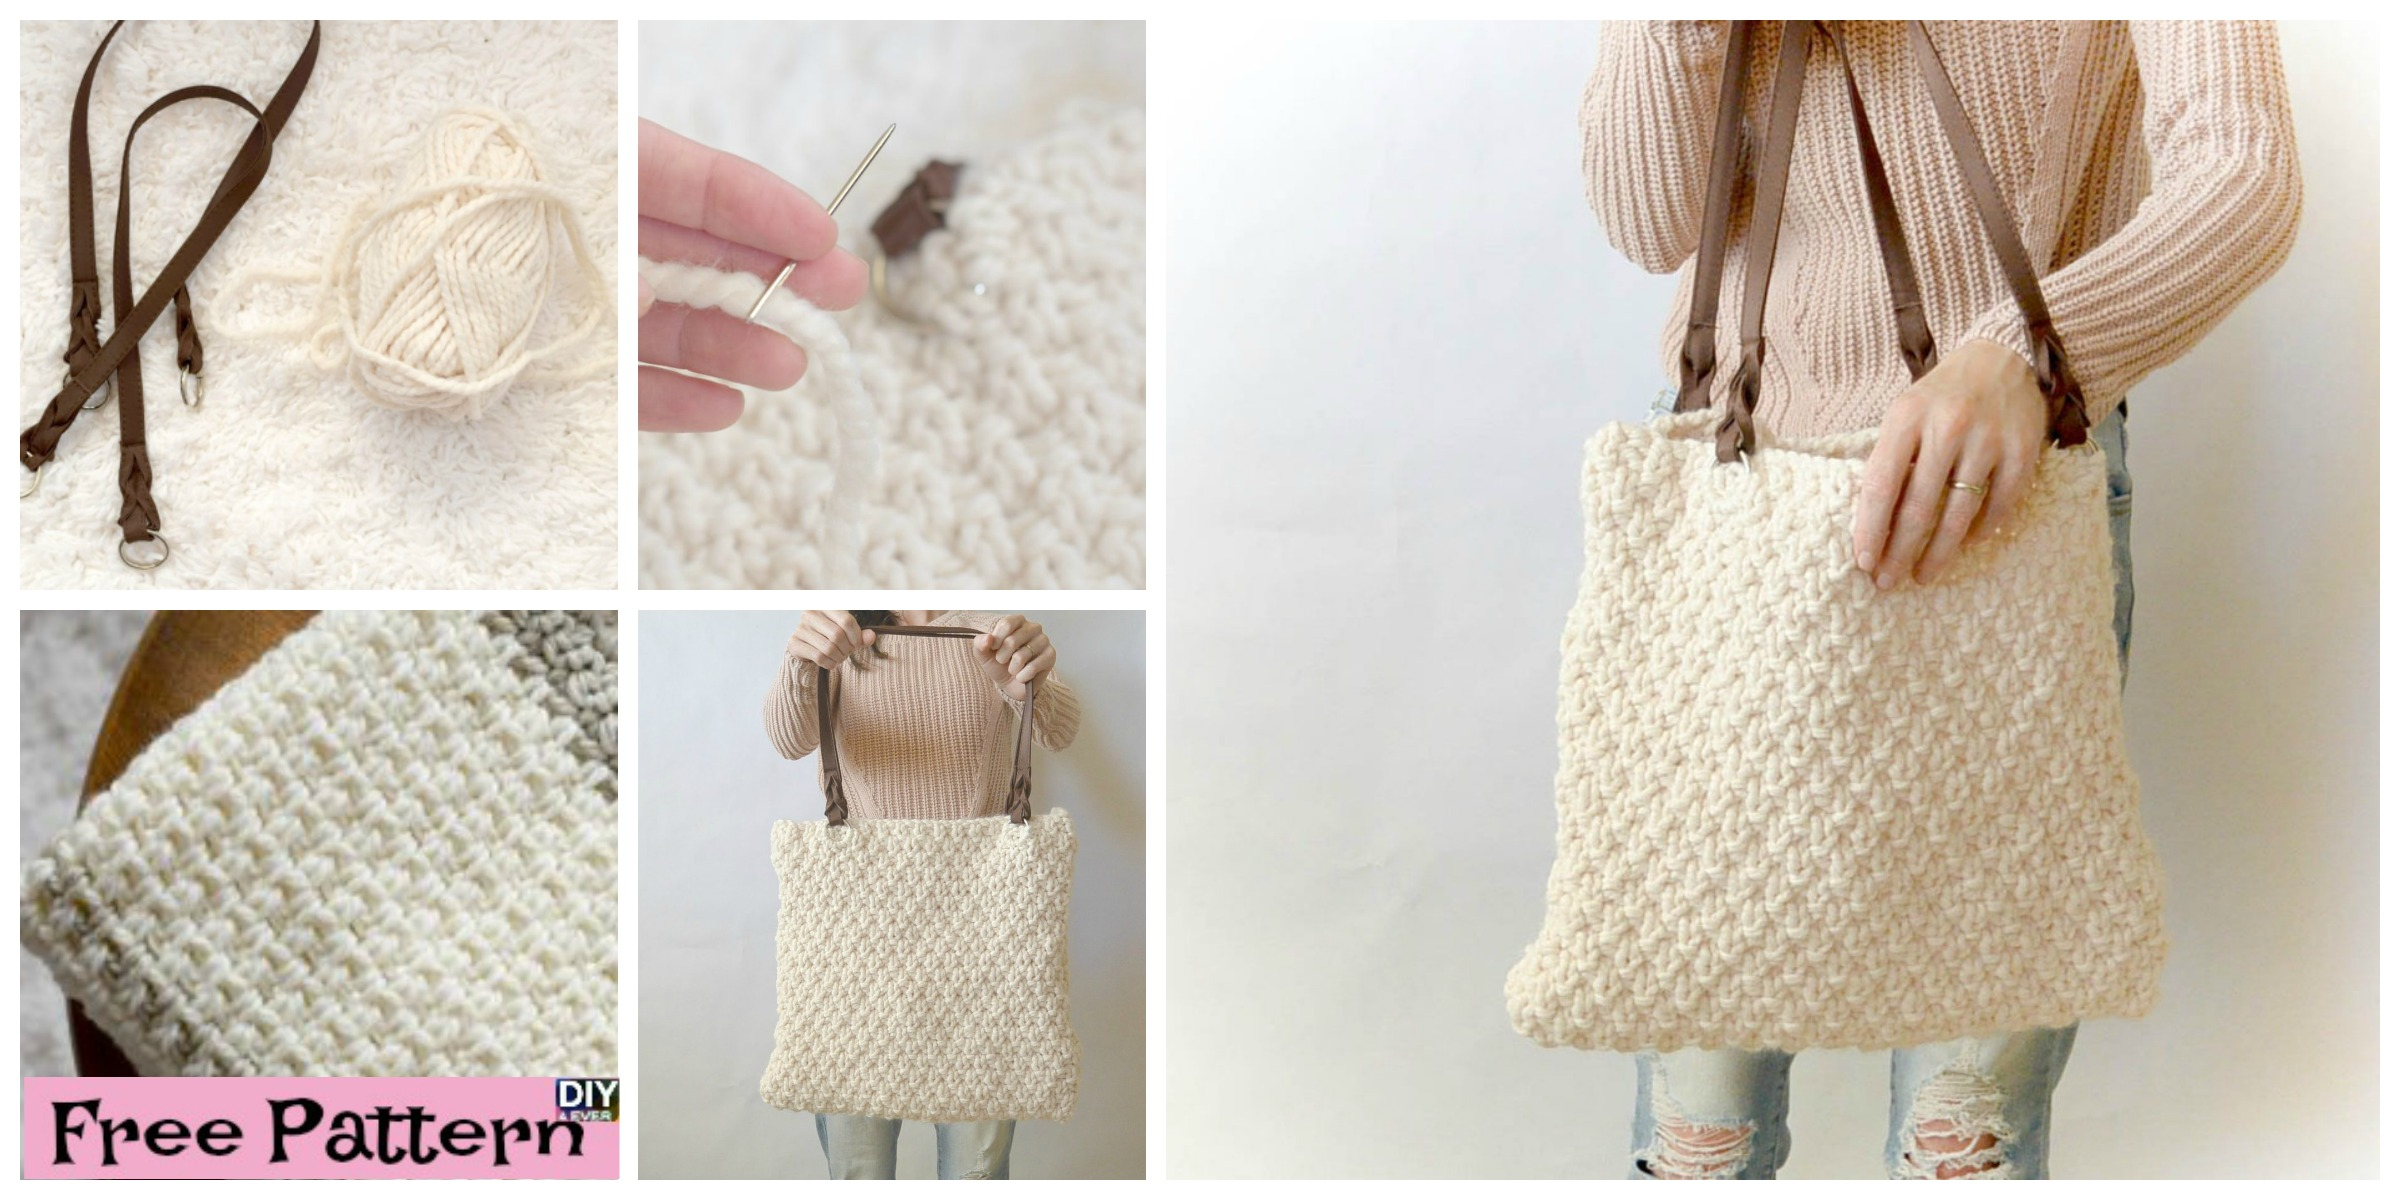 Knitted Bag Pattern Double Seed Stitch Knit Bag Free Pattern Diy 4 Ever